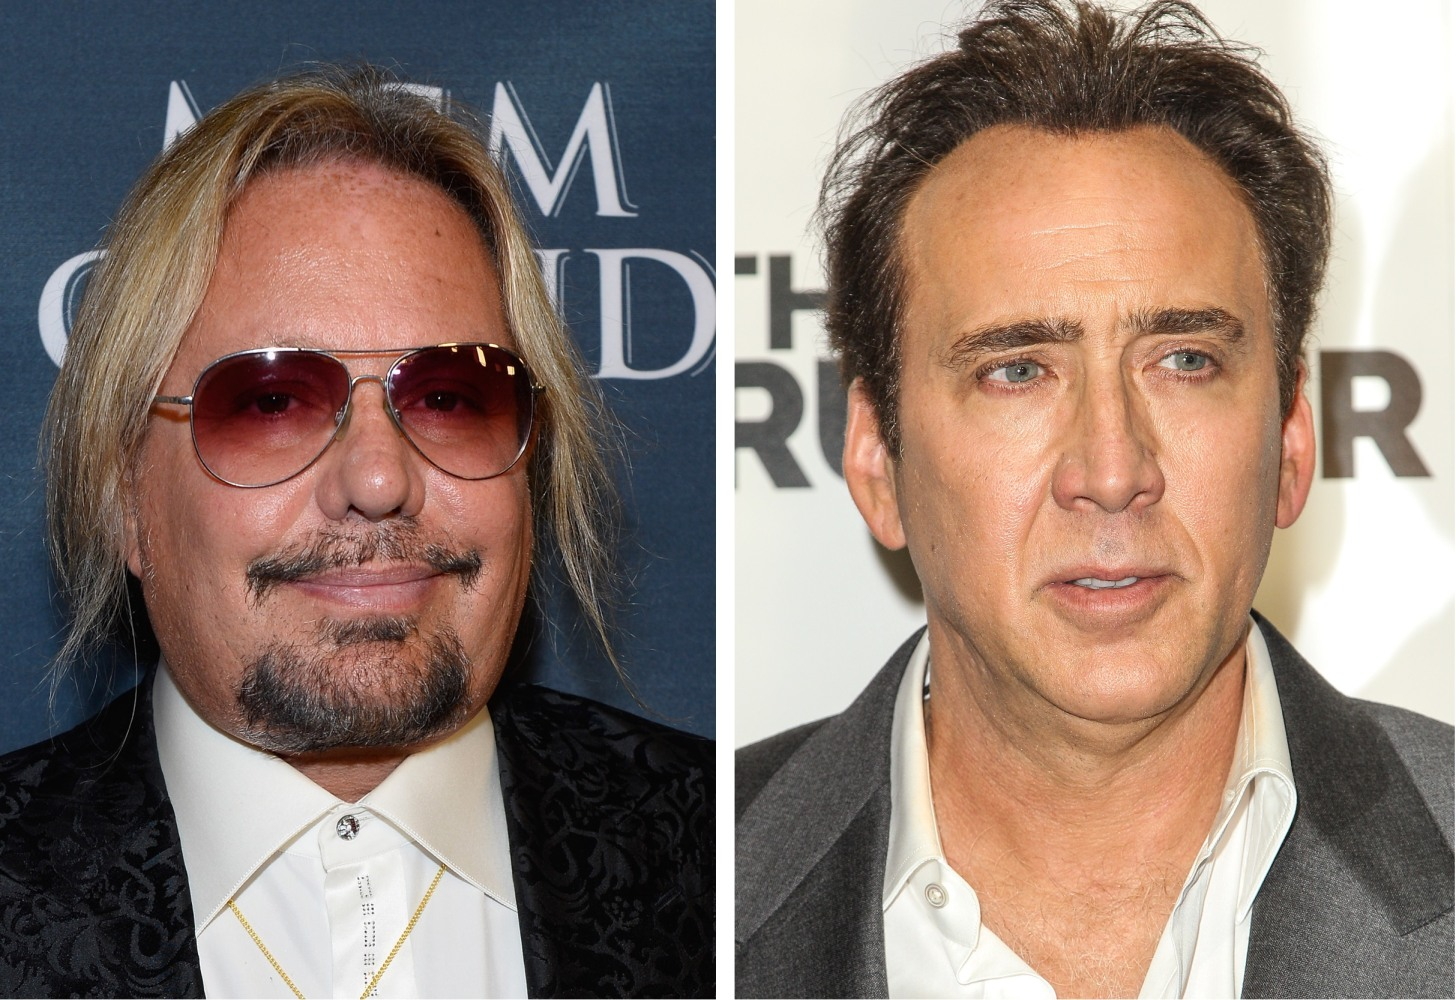 vince neil cited for battery after scuffle with nicolas